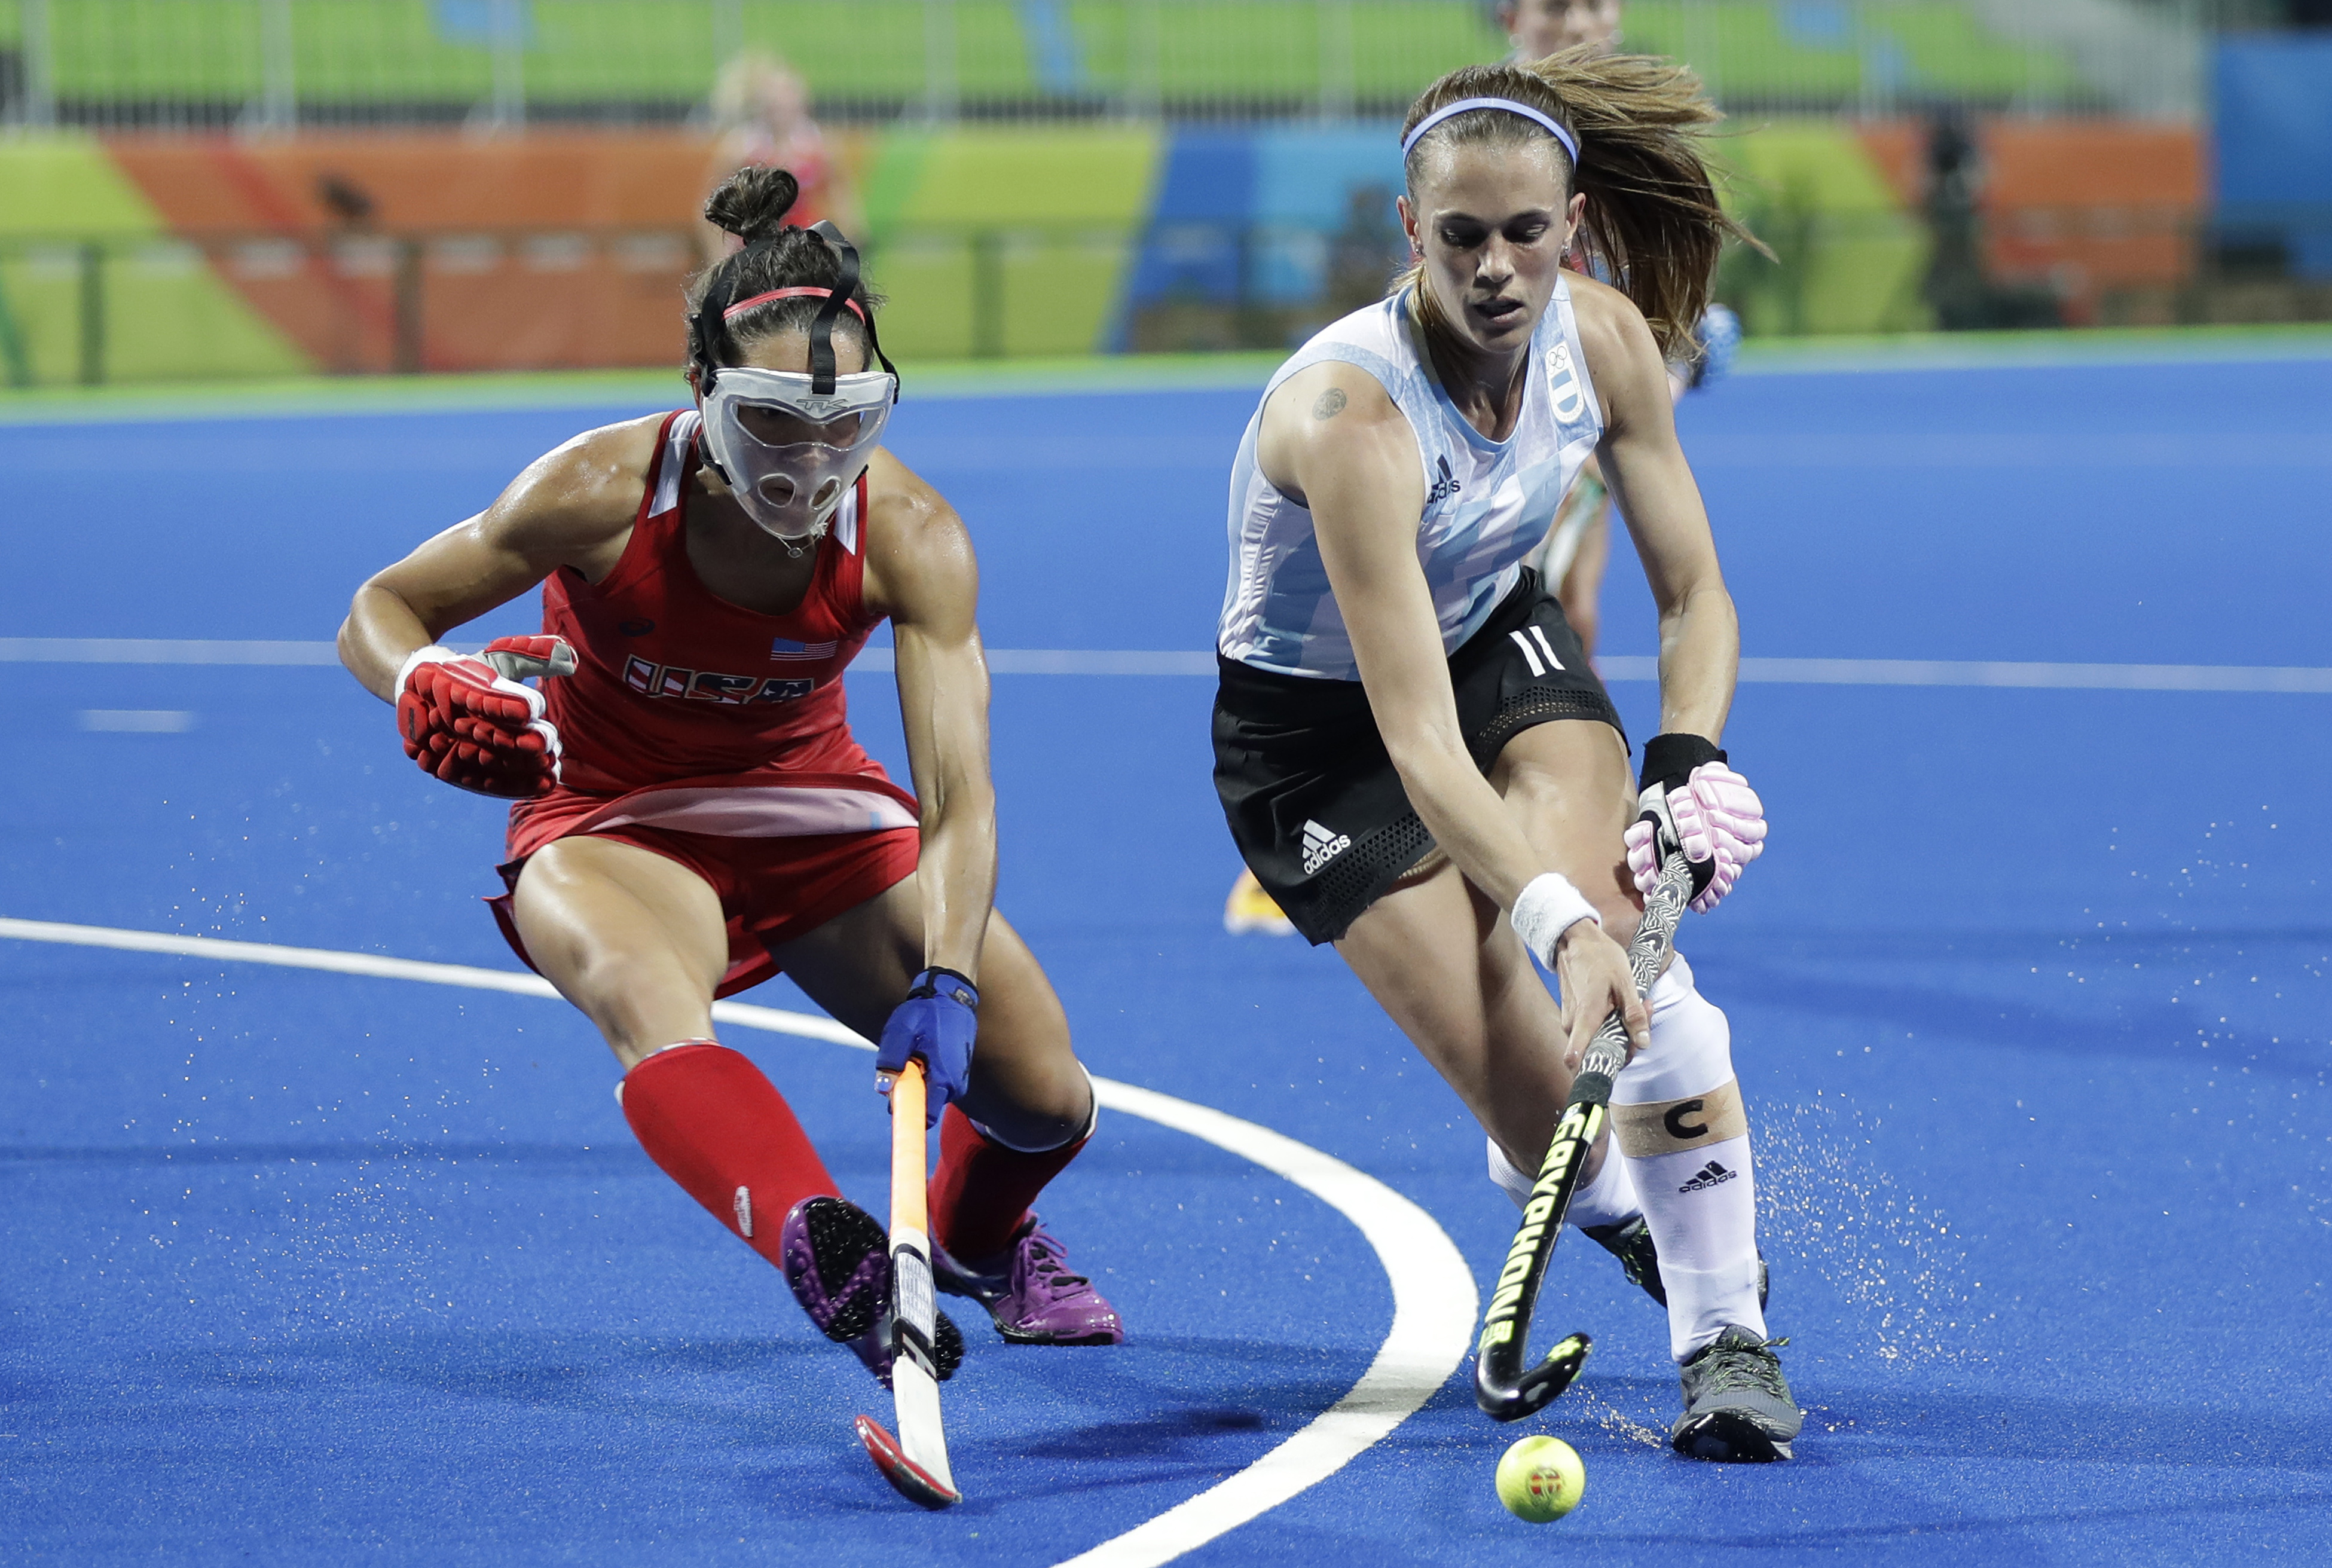 Argentina's Carla Rebecchi, right, fight for the ball with United States' Melissa Gonzalez, left, during a women's field hockey match at 2016 Summer Olympics in Rio de Janeiro, Brazil, Saturday, Aug. 6, 2016. (AP Photo/Hussein Malla)